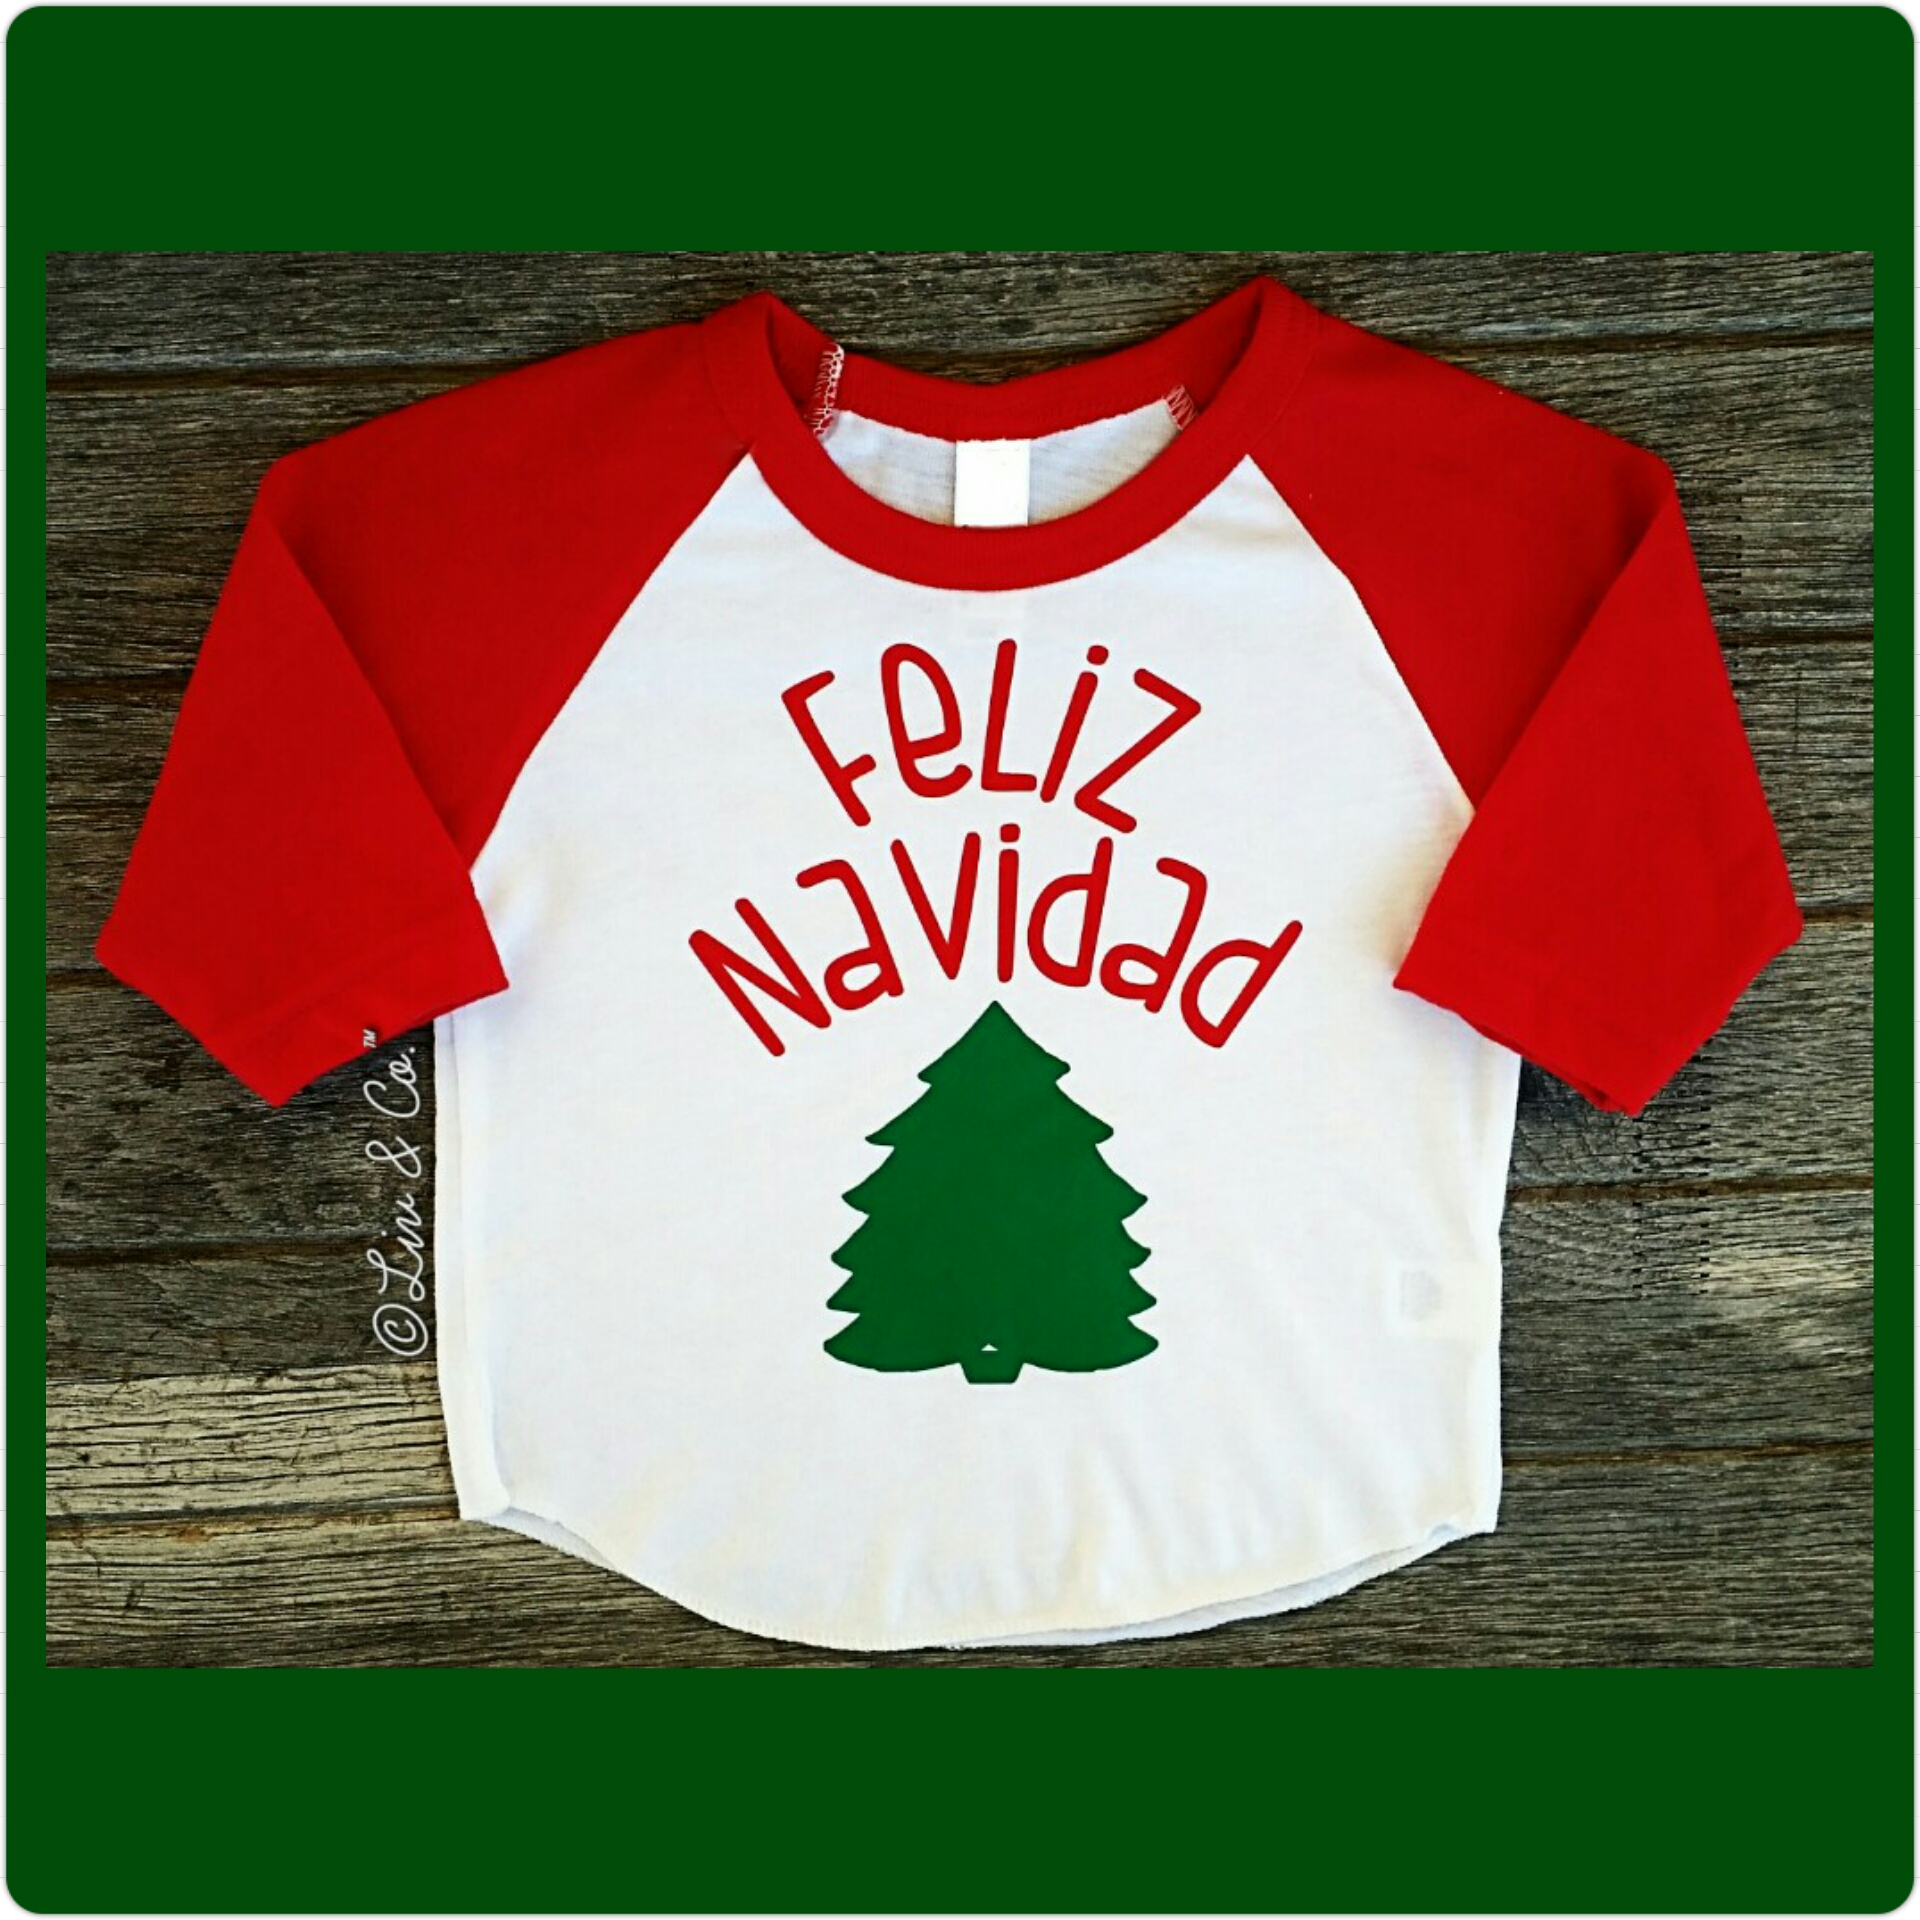 5e441d2aef36 Feliz Navidad / Merry Christmas Baby, Toddler, Youth and Adult ...